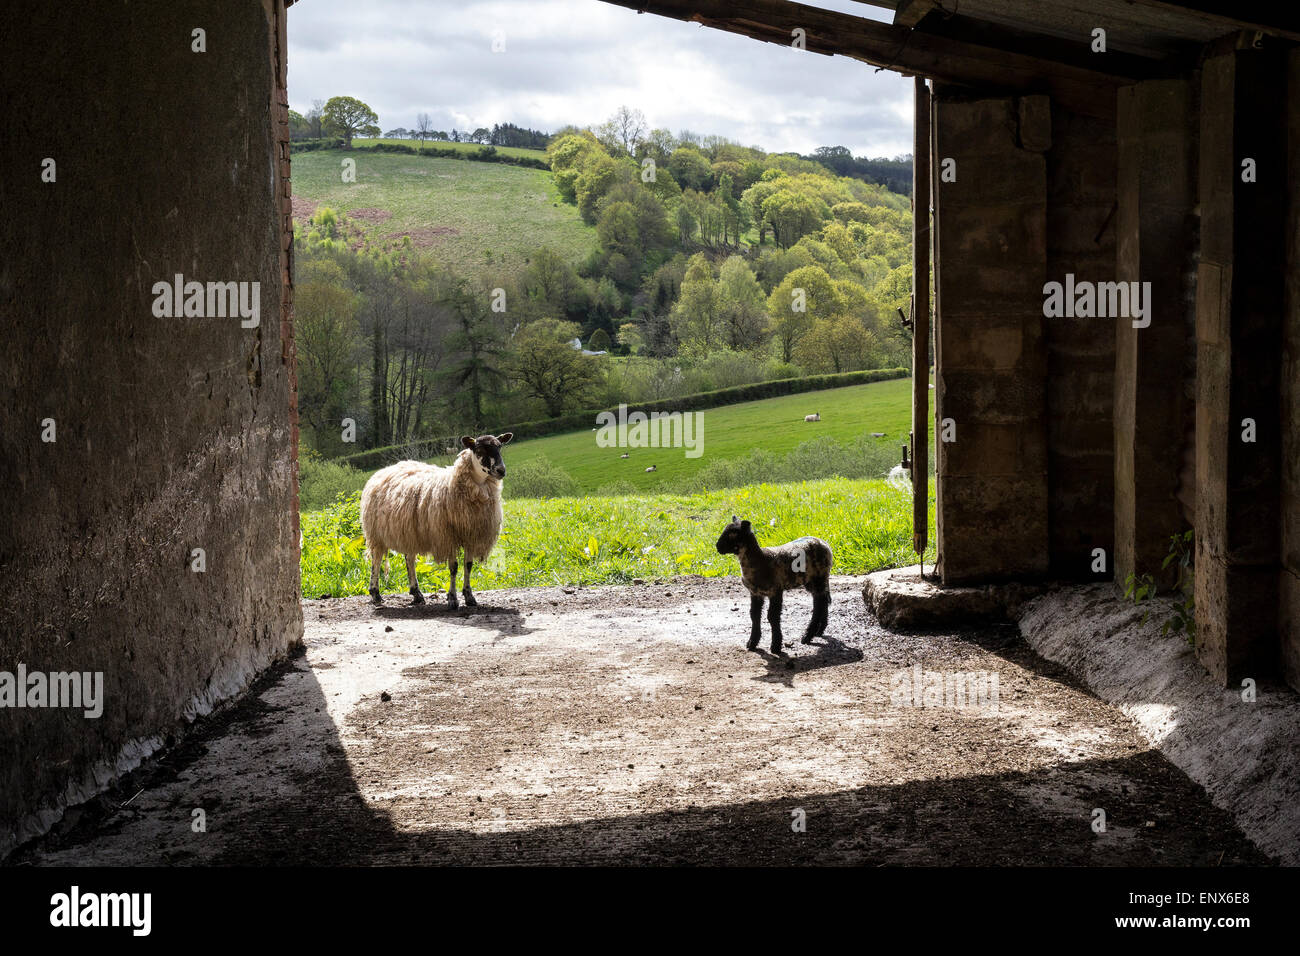 Ewe with lamb in pastoral scene.Shepherd,Livestock,Devon,Rural Scene,Flock Of Sheep,Dirt Road,Farm Animals,Agriculture,Animals - Stock Image